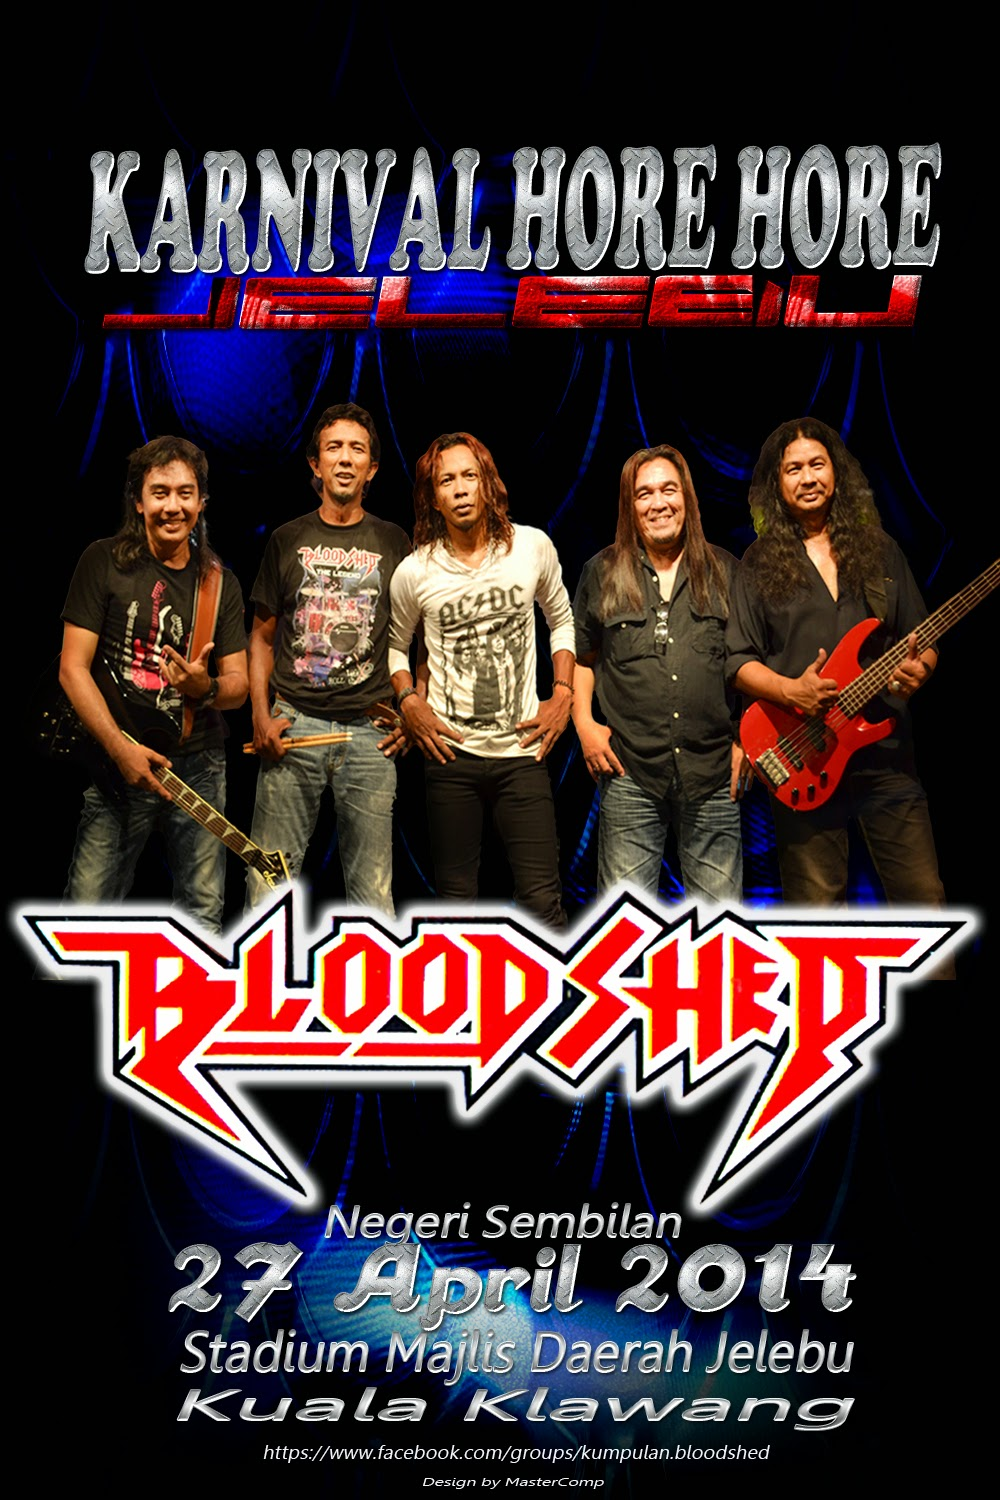 Event: Bloodshed Karnival Hore Hore